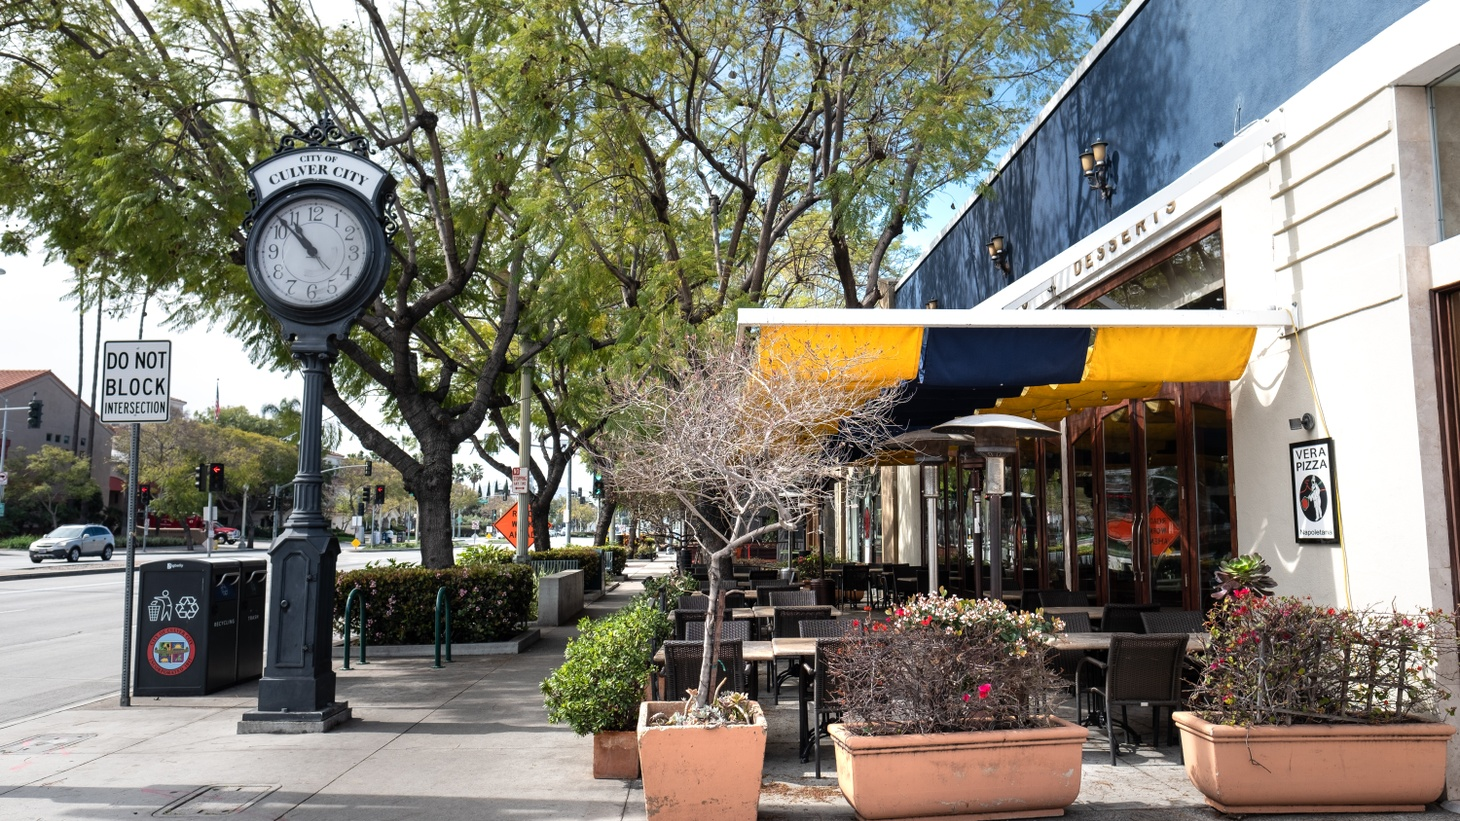 Customers haven't been able to dine inside LA County restaurants for some two months. The LA County Board of Supervisors is pushing for restaurants to reopen. Could they come with more outdoor seating?